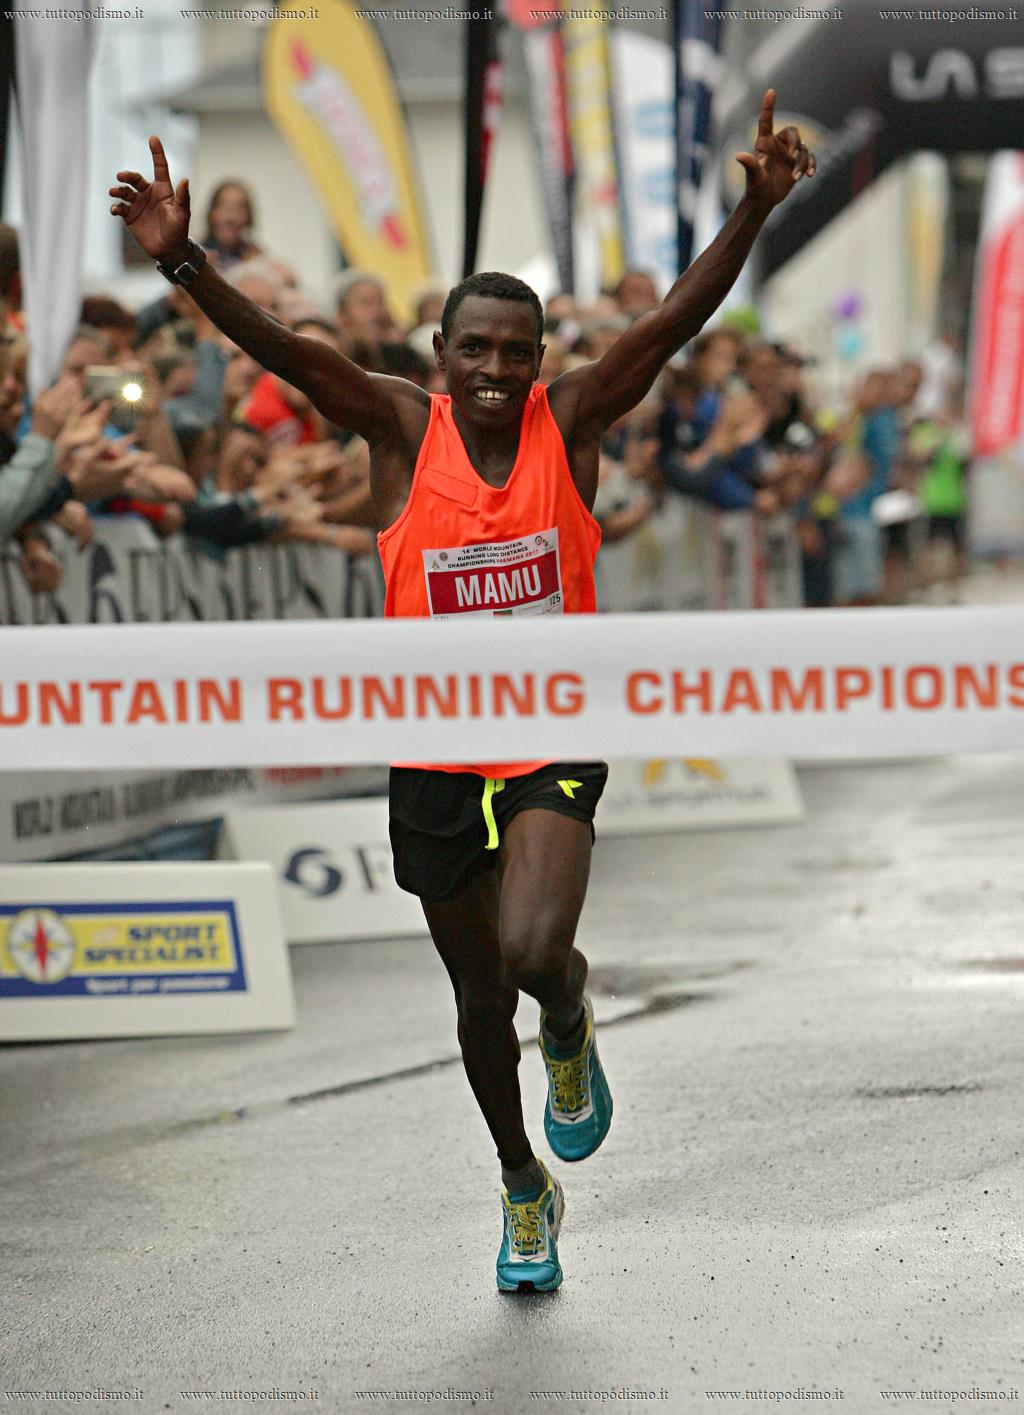 14o_World_Mountain_Running_Championship_long_distance - mamuarrivo1.jpg